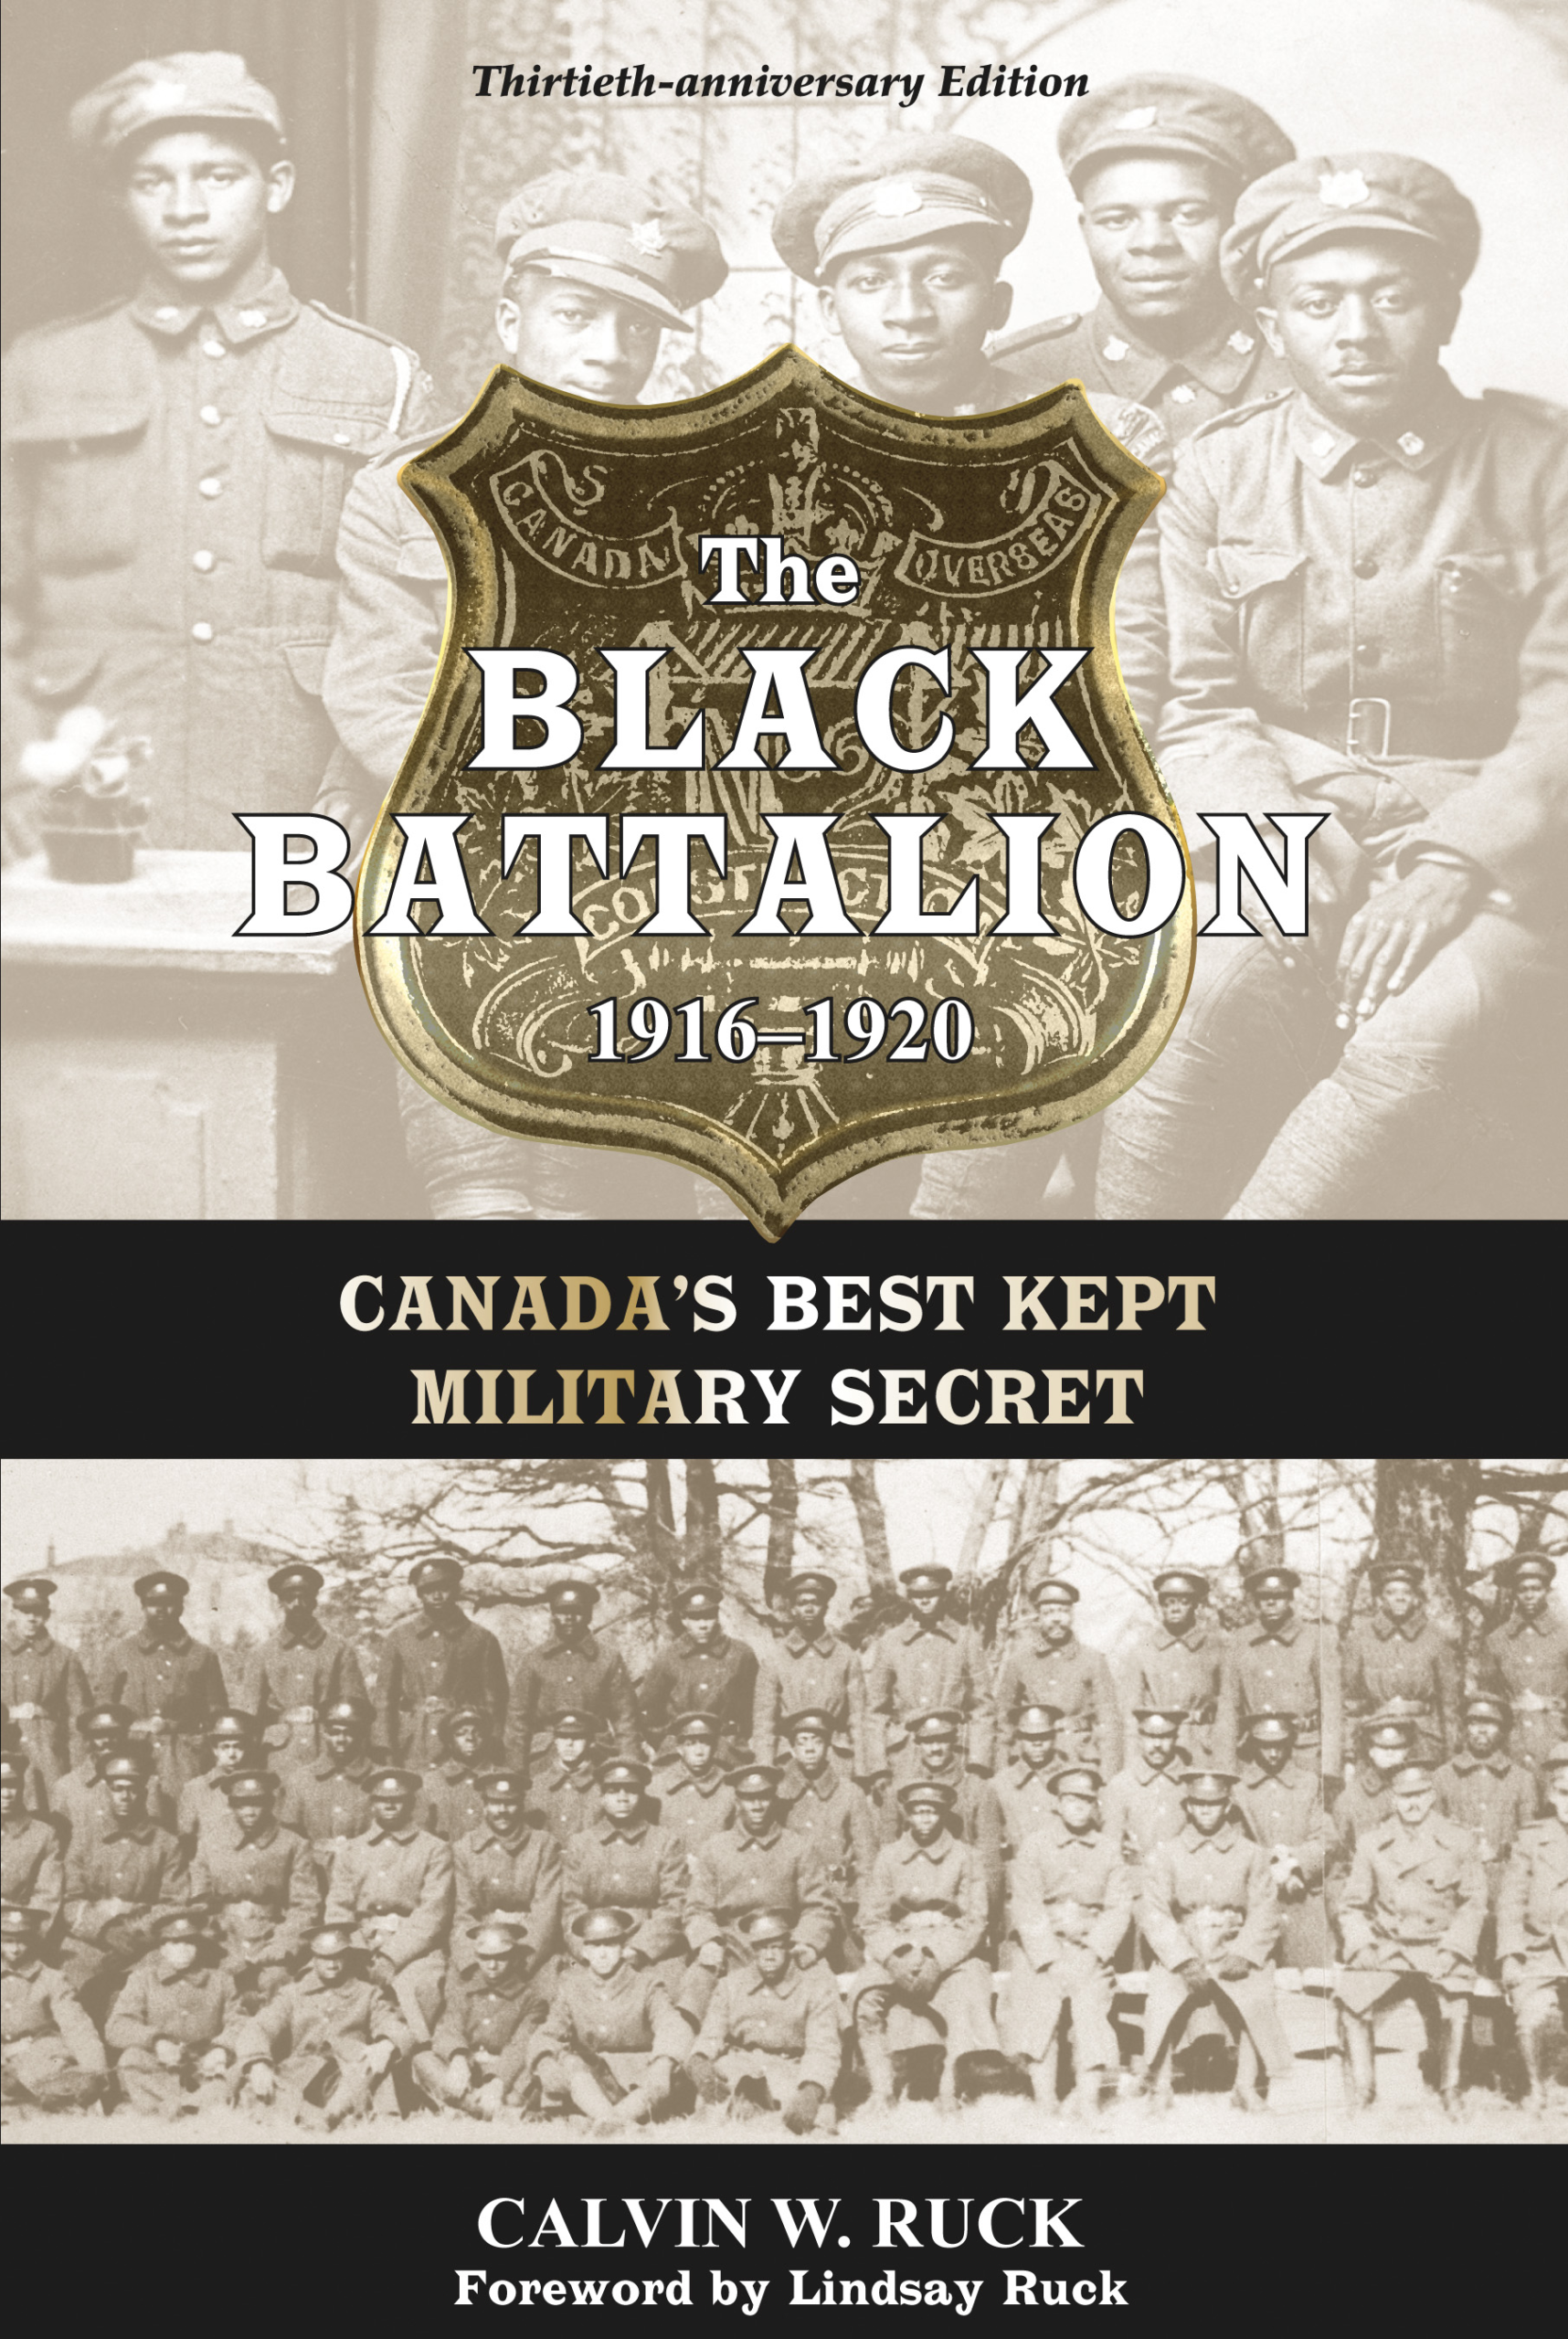 The Black Battalion 1916-1920